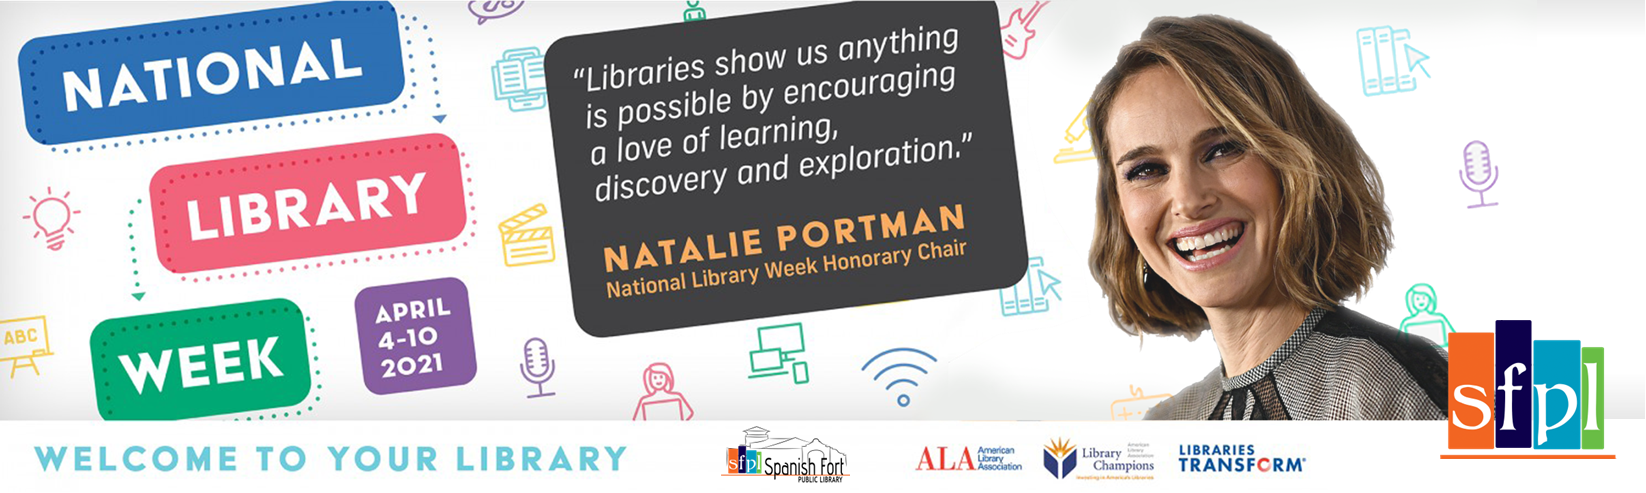 Celebrate national Library Weeek, April 4th - 10th, 2021 with Natalie Portman, the American Library Associations official National Library Week 2021 ambassador.